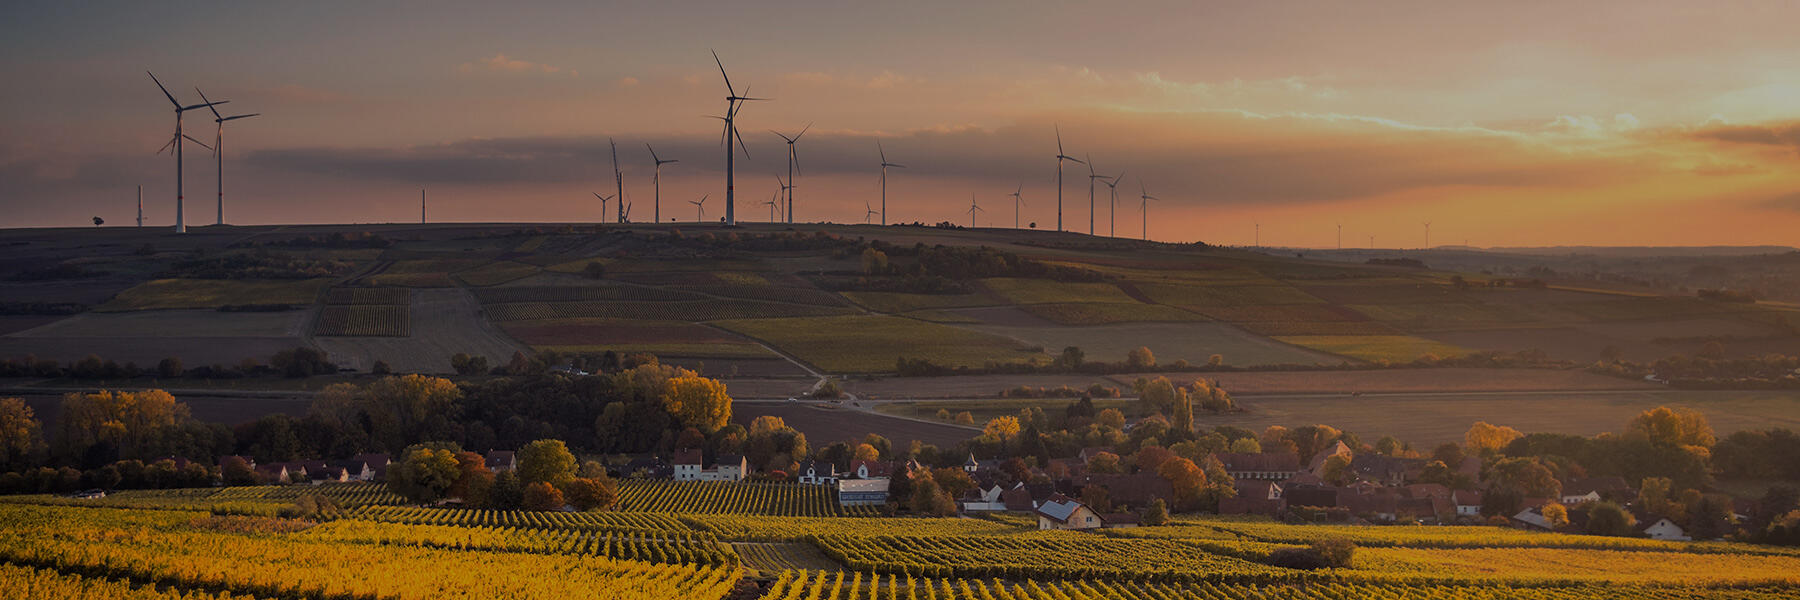 Wind turbines on a hillside